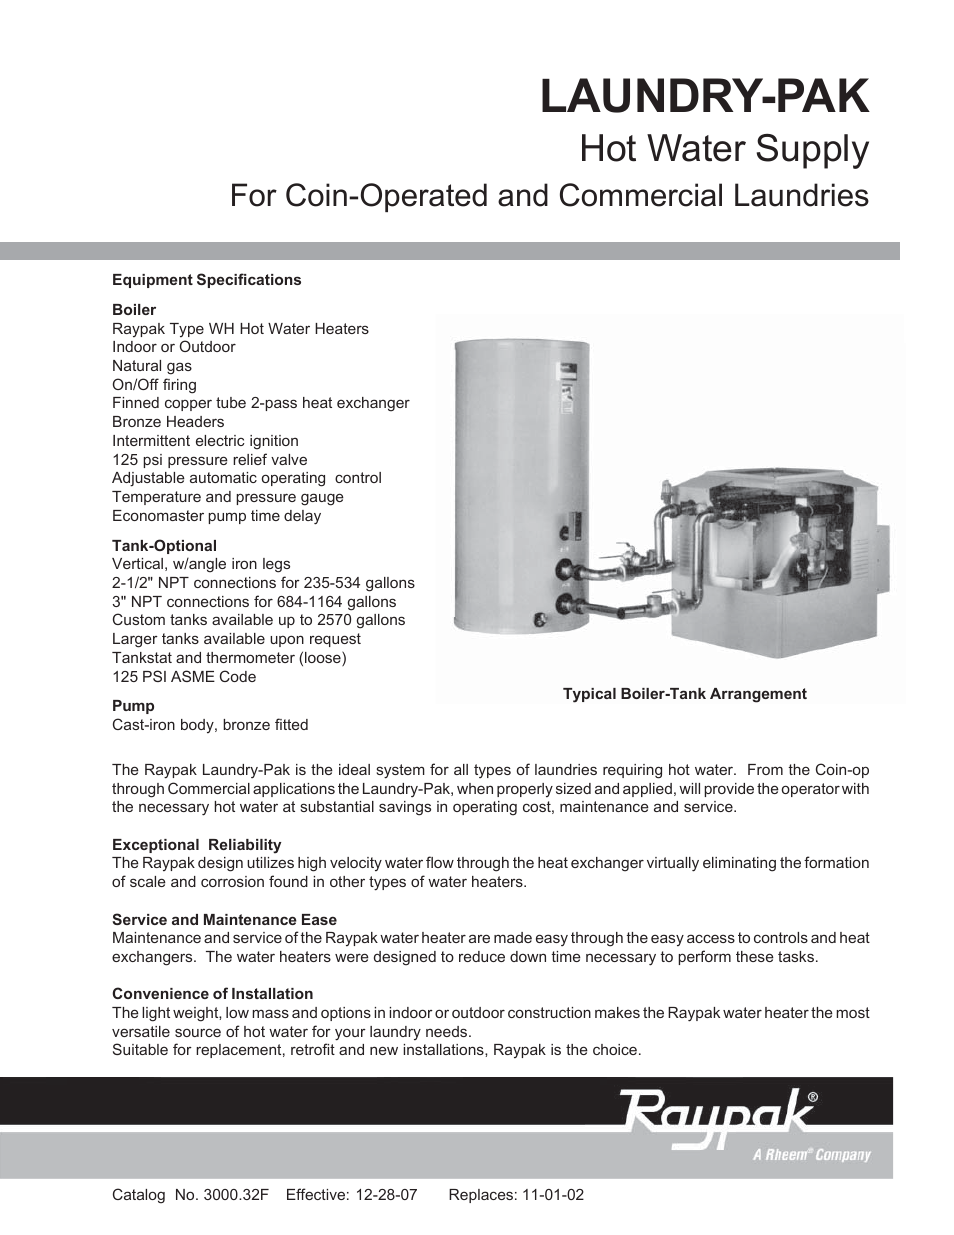 Raypak Hot Water Supply LAUNDRY-PAK User Manual | 2 pages